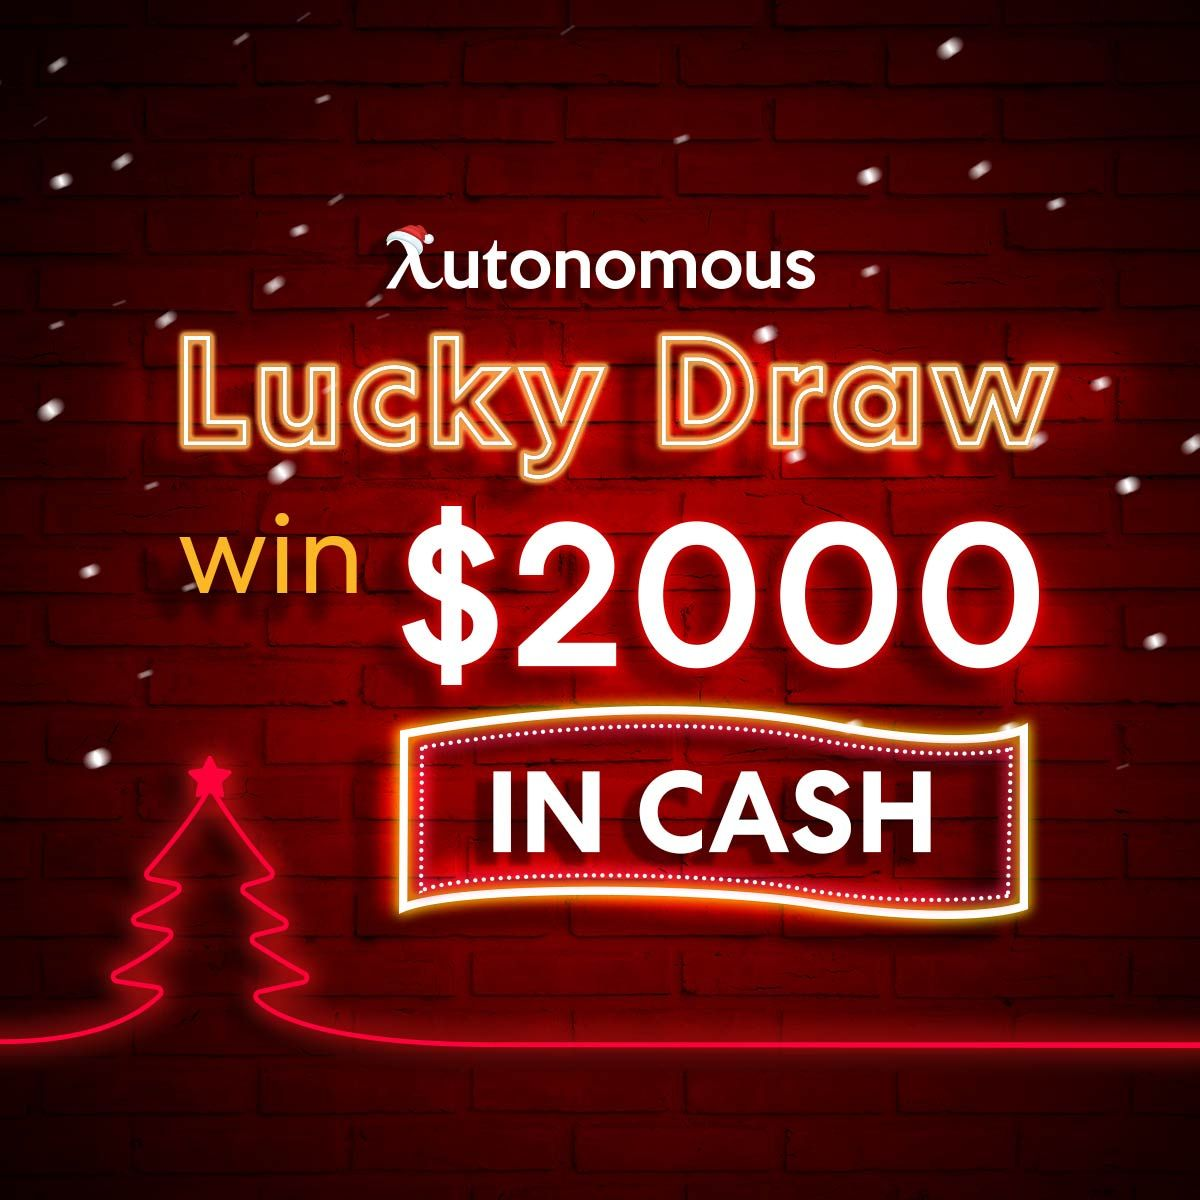 The Autonomous Lucky Draw win 2000 in cash Best